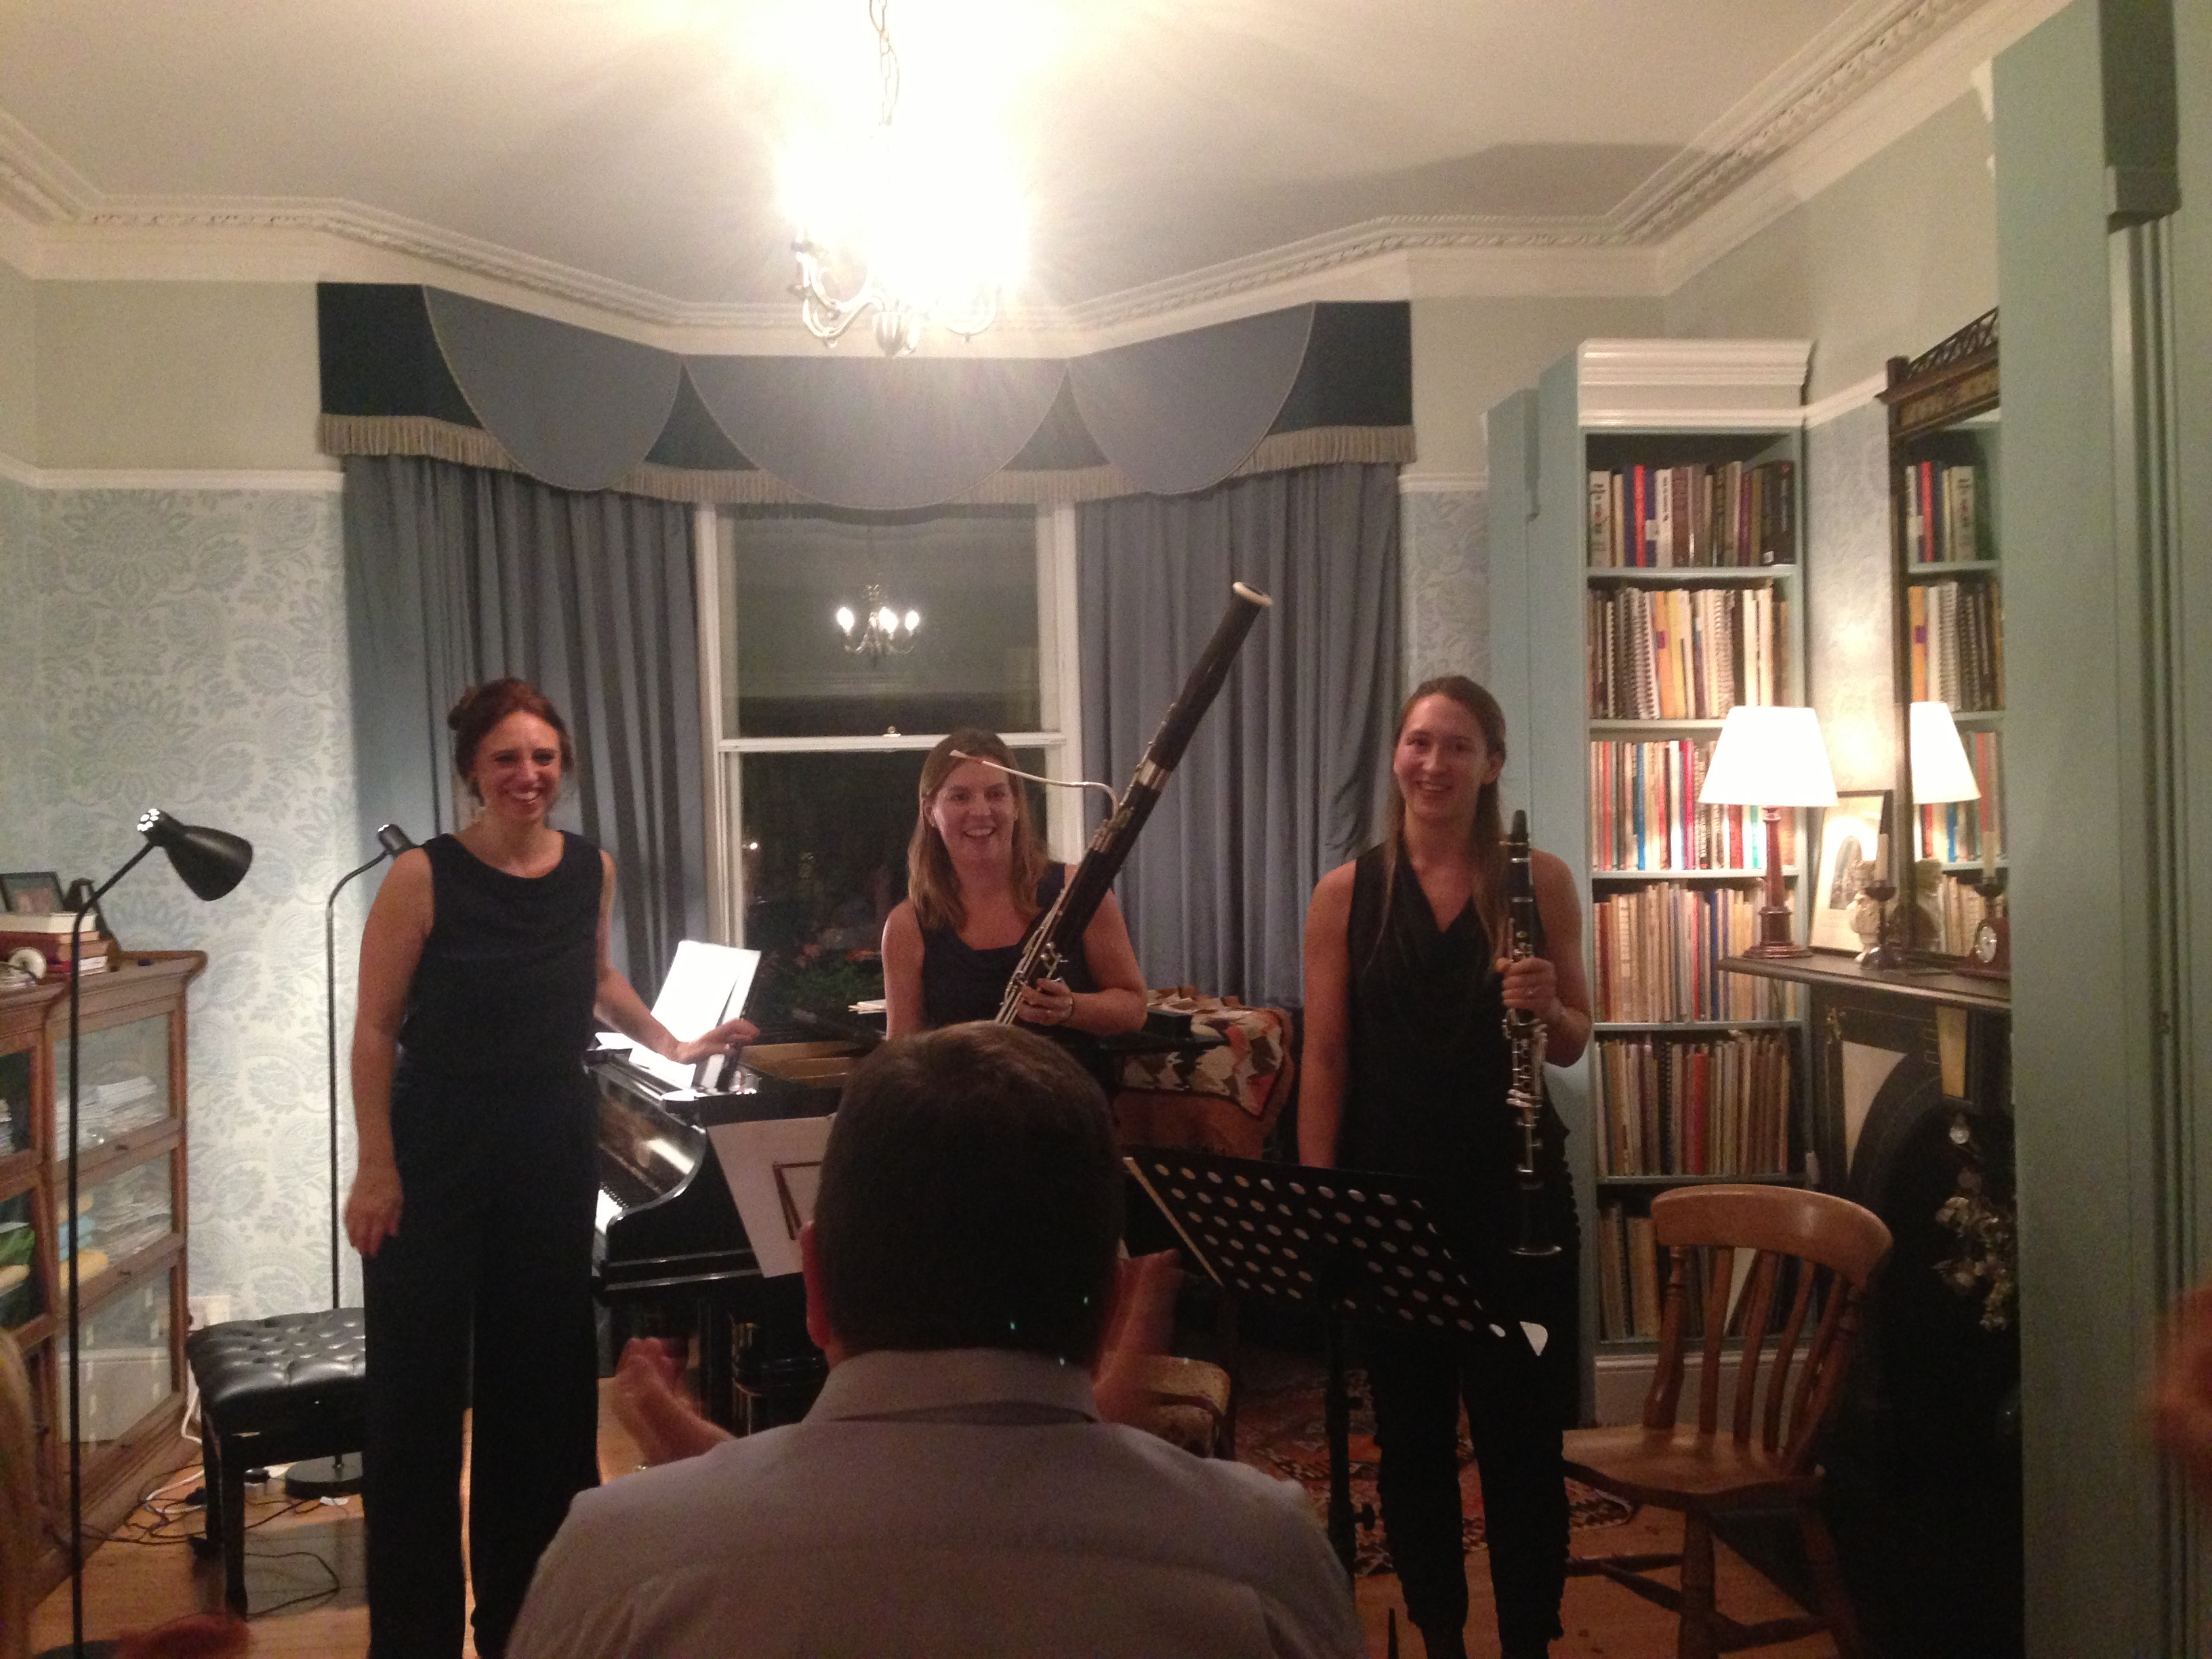 Première of a new work by composer James Rae with the Caledonia trio (Iona Garvie and Fiona Mitchell